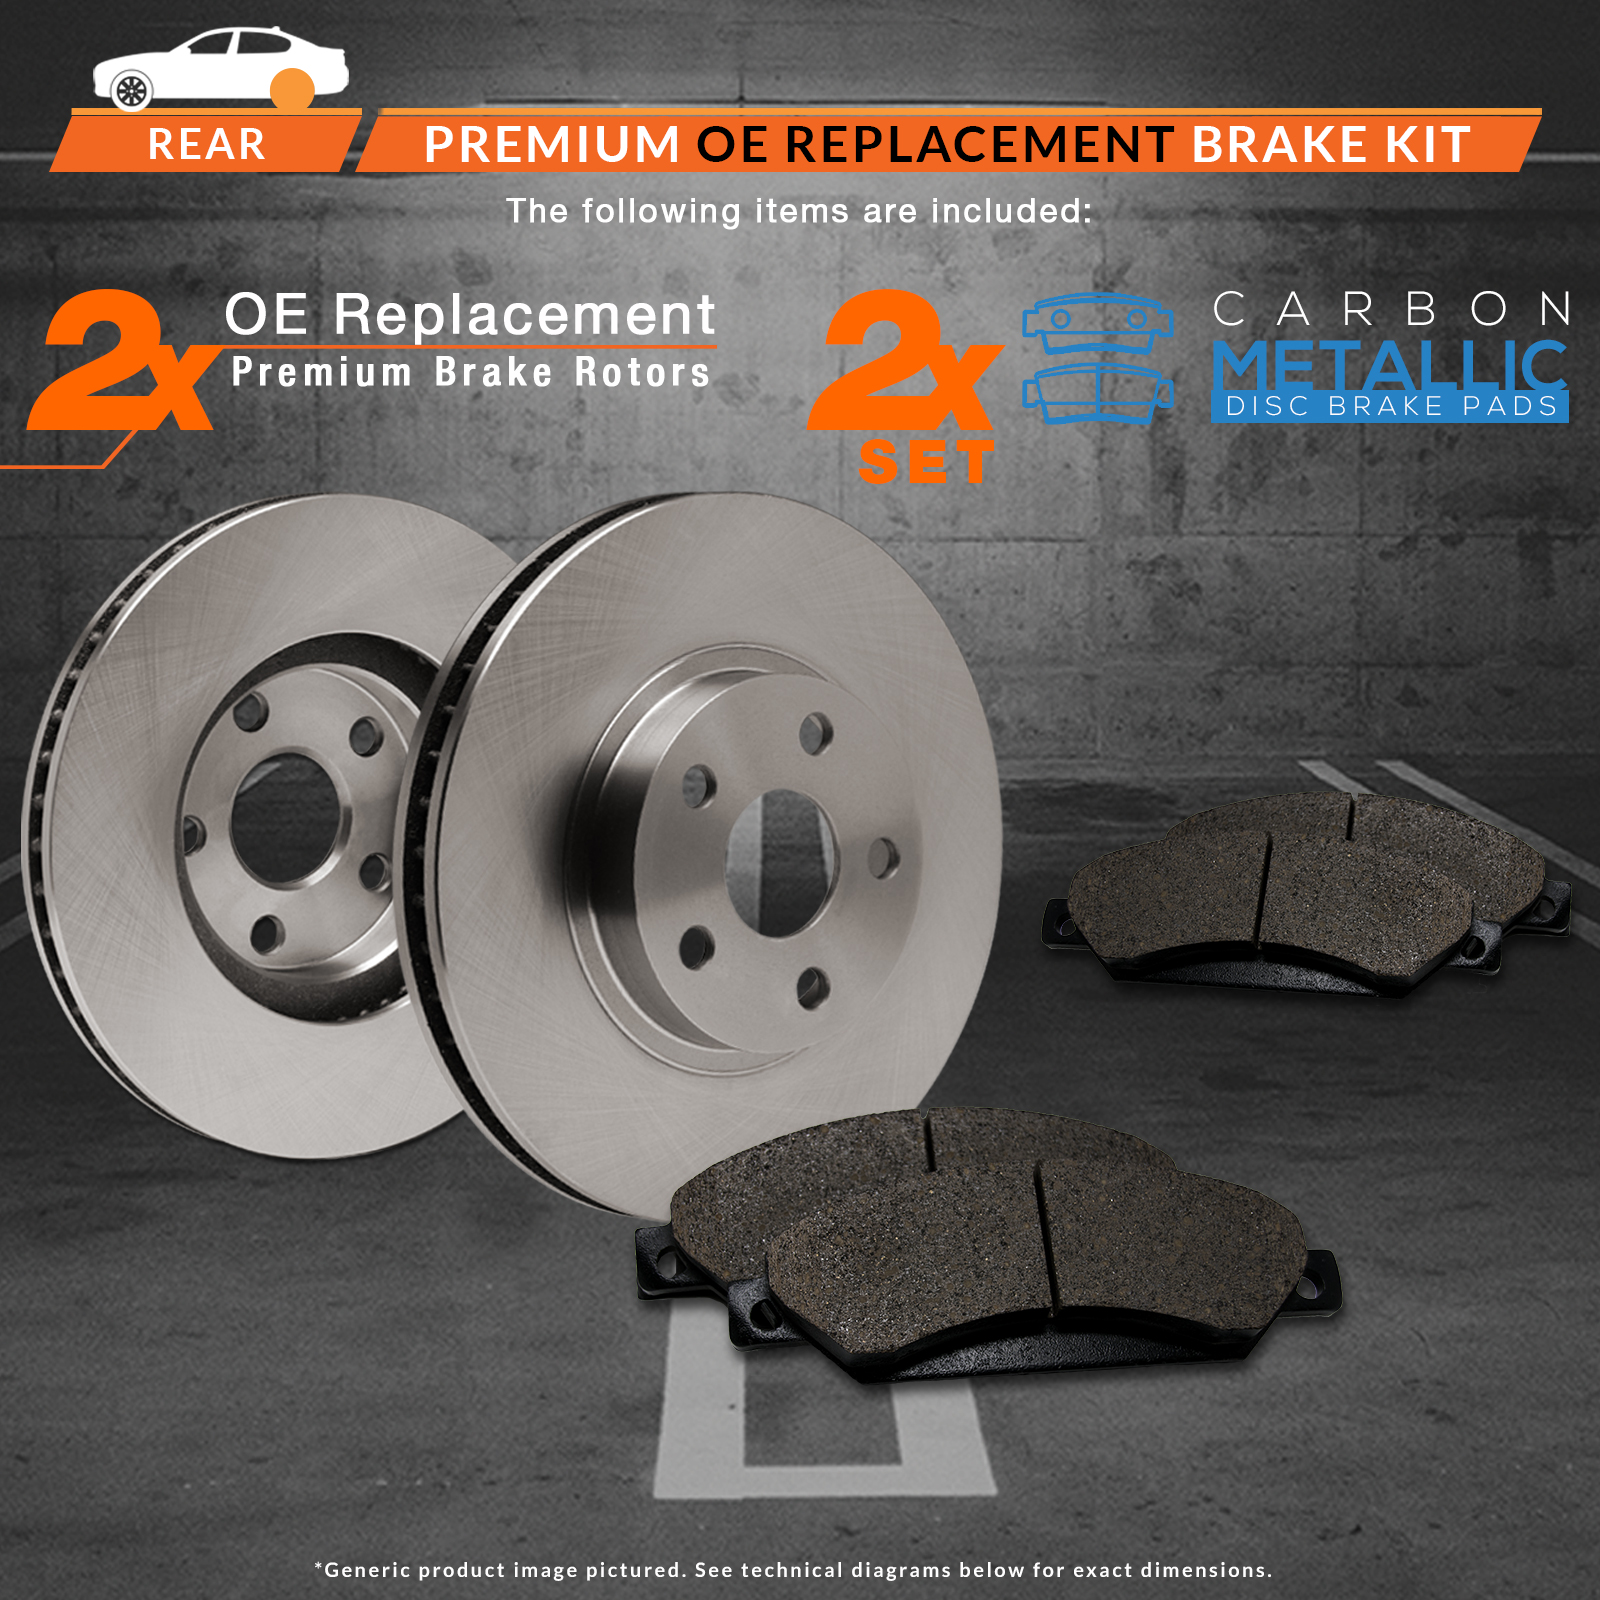 2013 2014 2015 Ford Taurus Non SHO OE Replacement Rotors w/Metallic Pads R 2